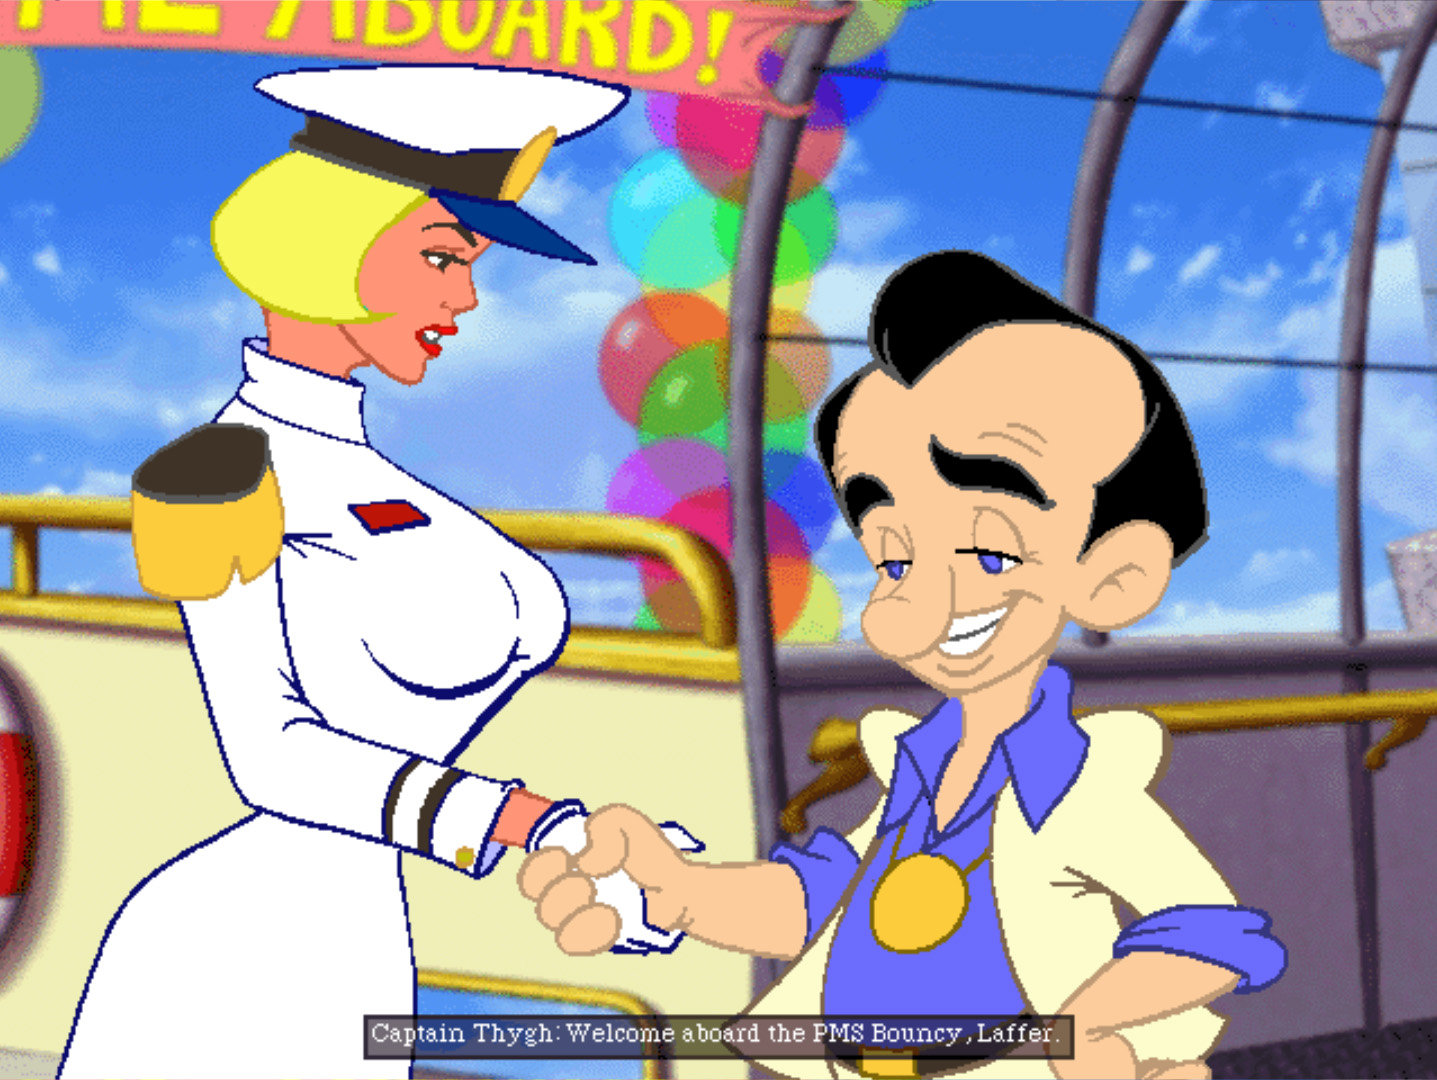 Leisure Suit Larry Love For Sail Vicky Player None: June 2016